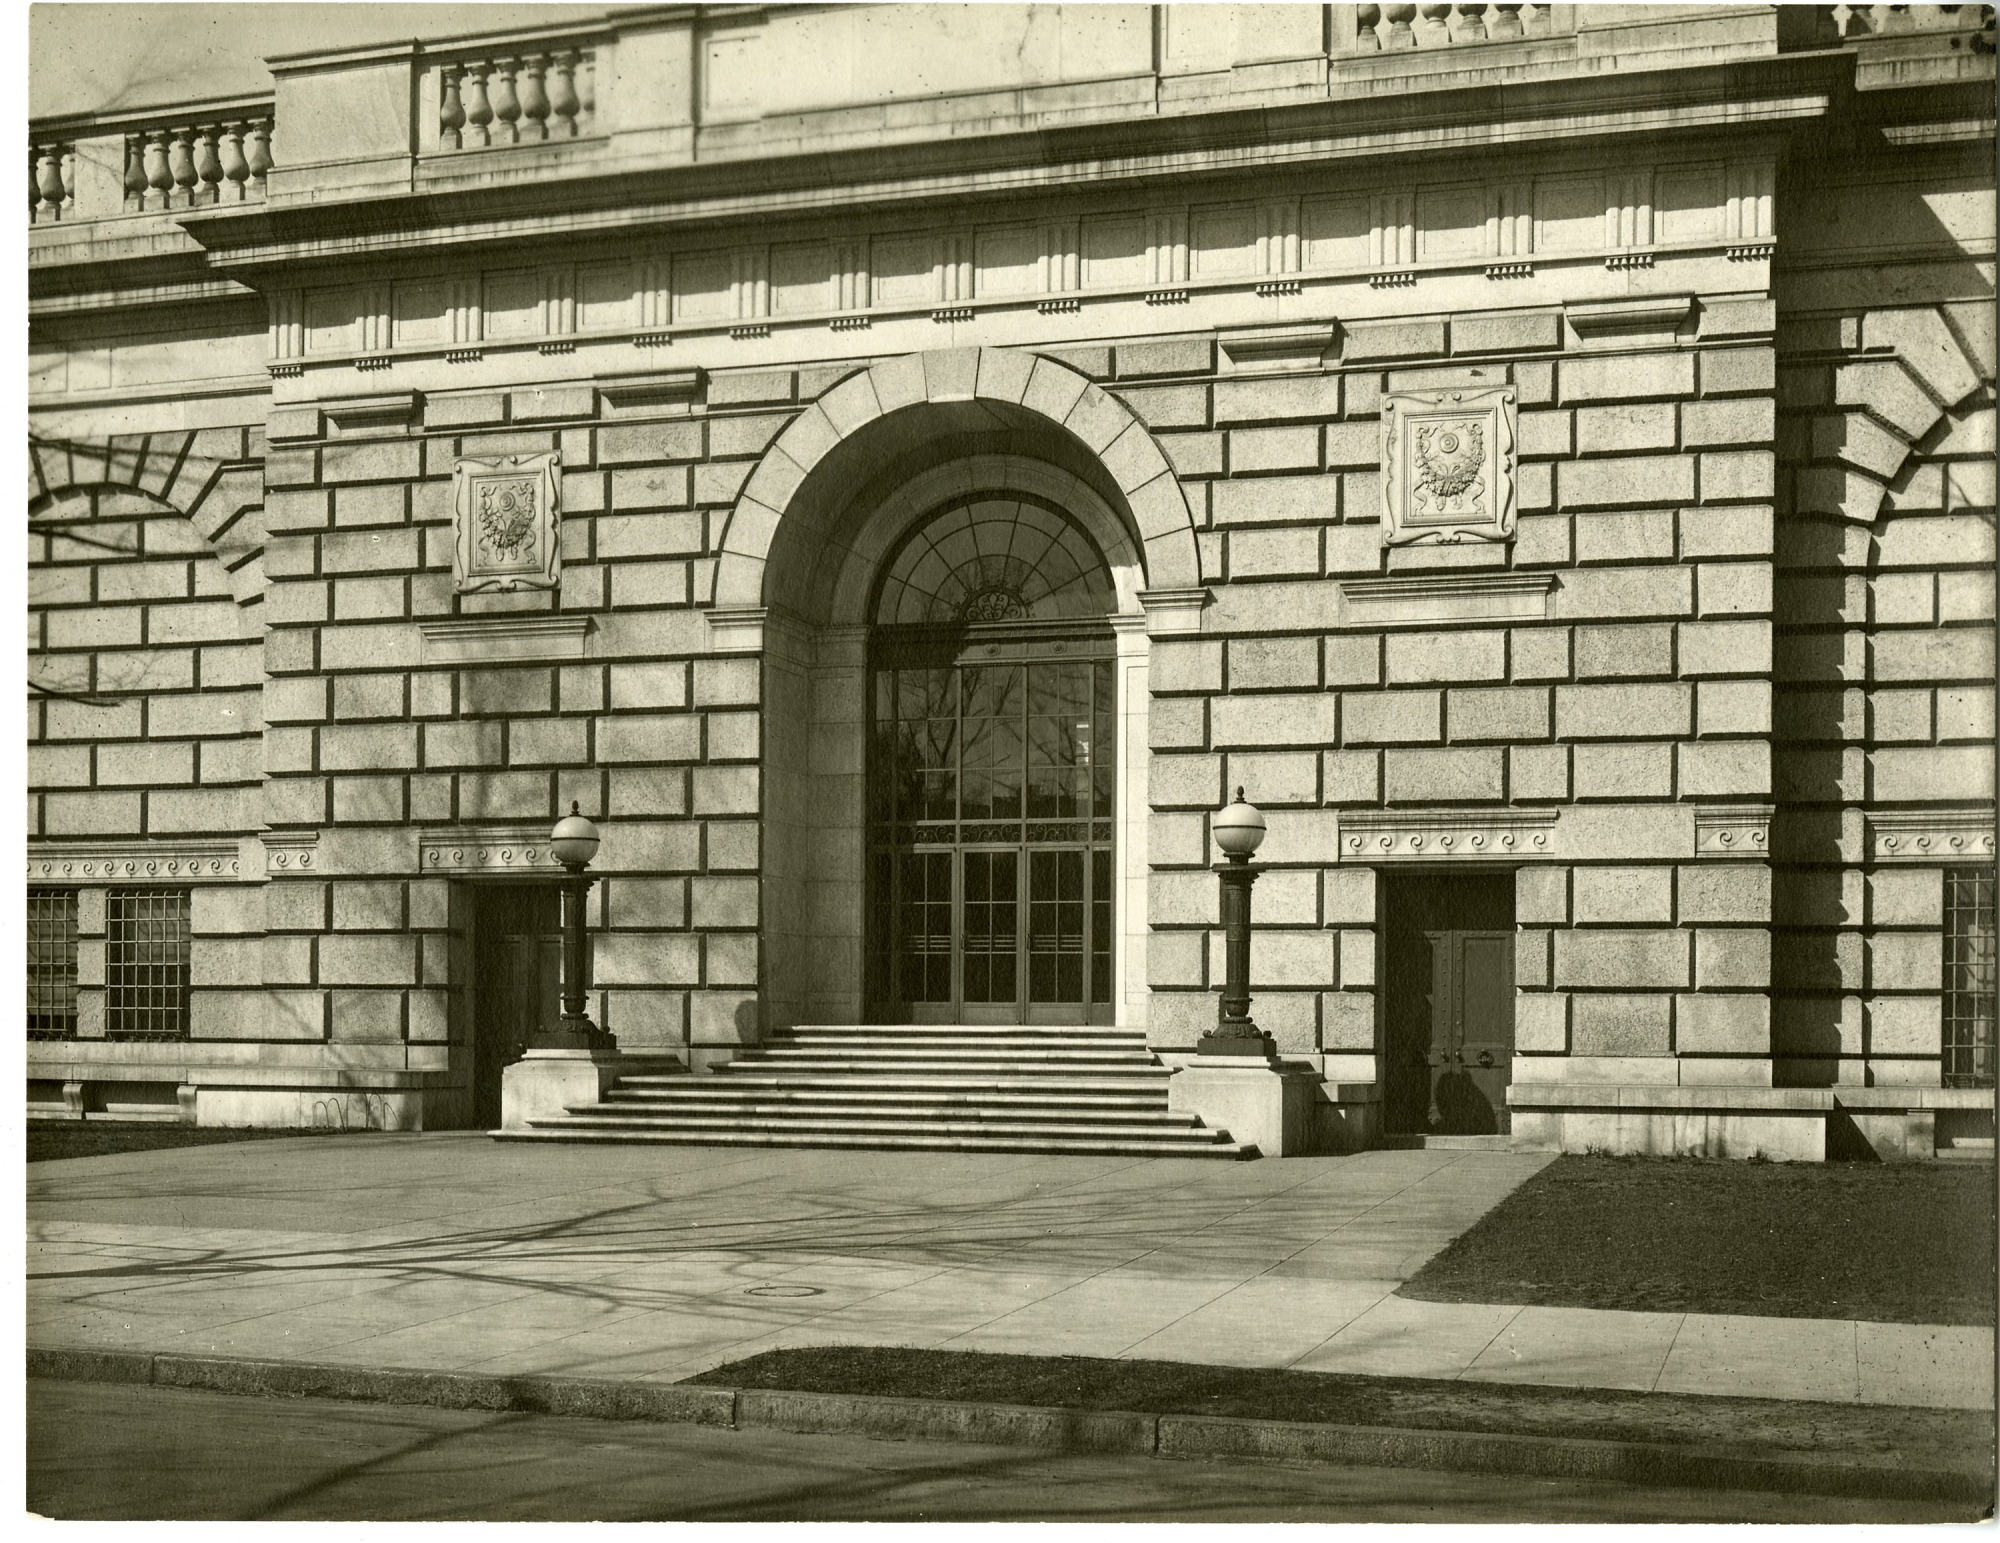 South Front - Freer, by Unknown, c. 1950, Smithsonian Archives - History Div, SIA2007-0169.